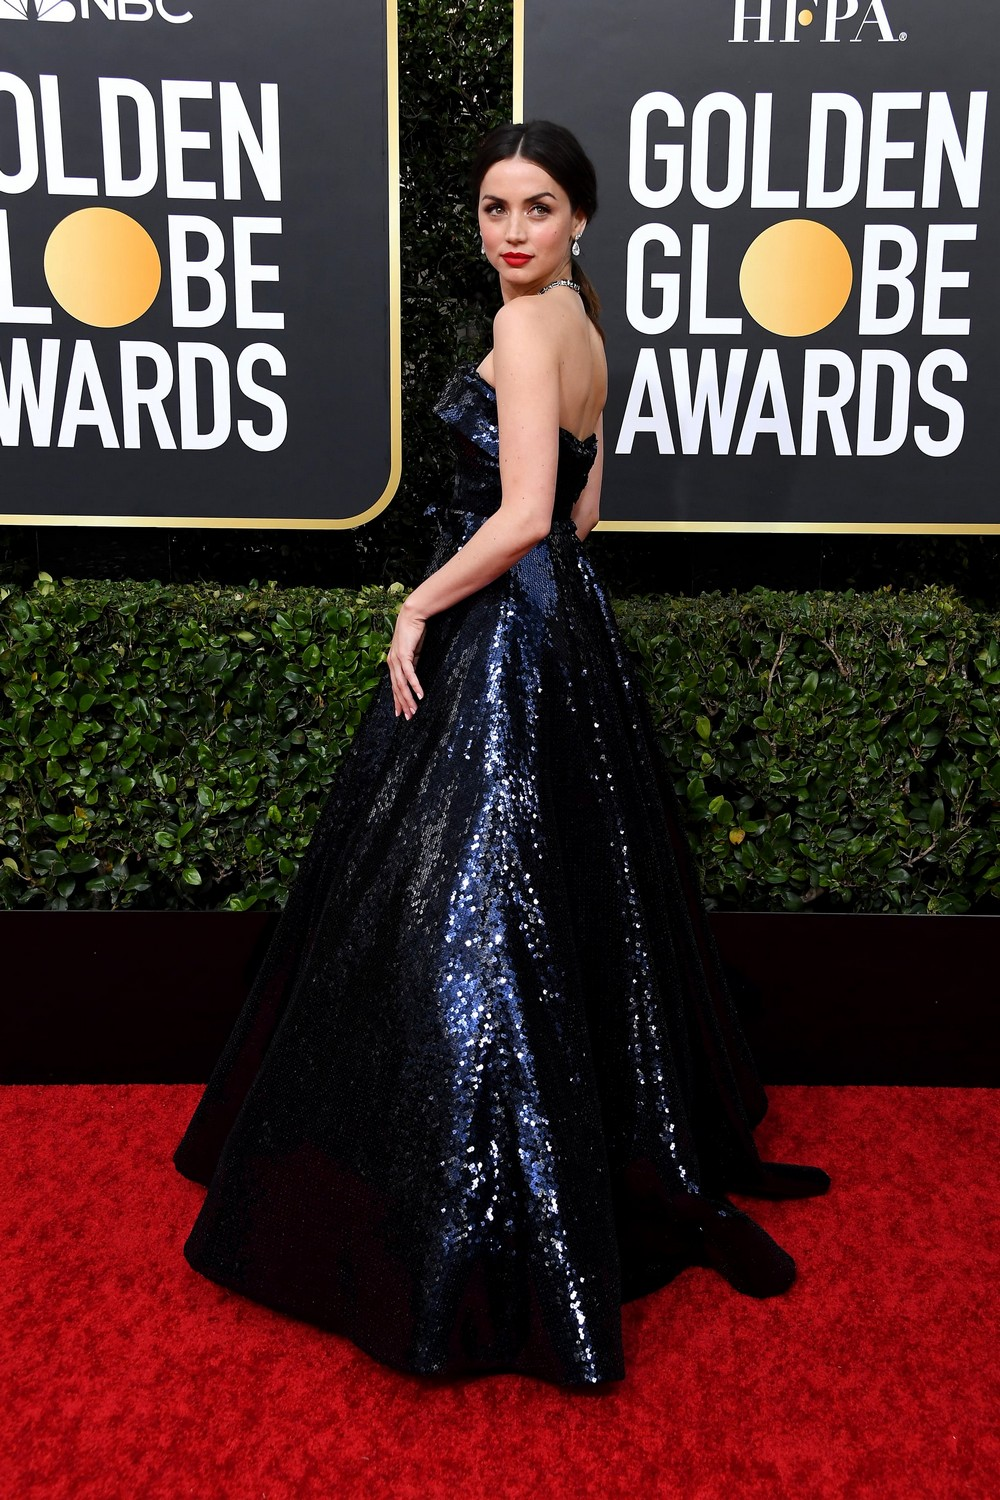 Golden Globes 2020 The Most Exciting Looks Seen on the Red Carpet 1 golden globes 2020 Golden Globes 2020: The Most Exciting Looks Seen on the Red Carpet Golden Globes 2020 The Most Exciting Looks Seen on the Red Carpet 1